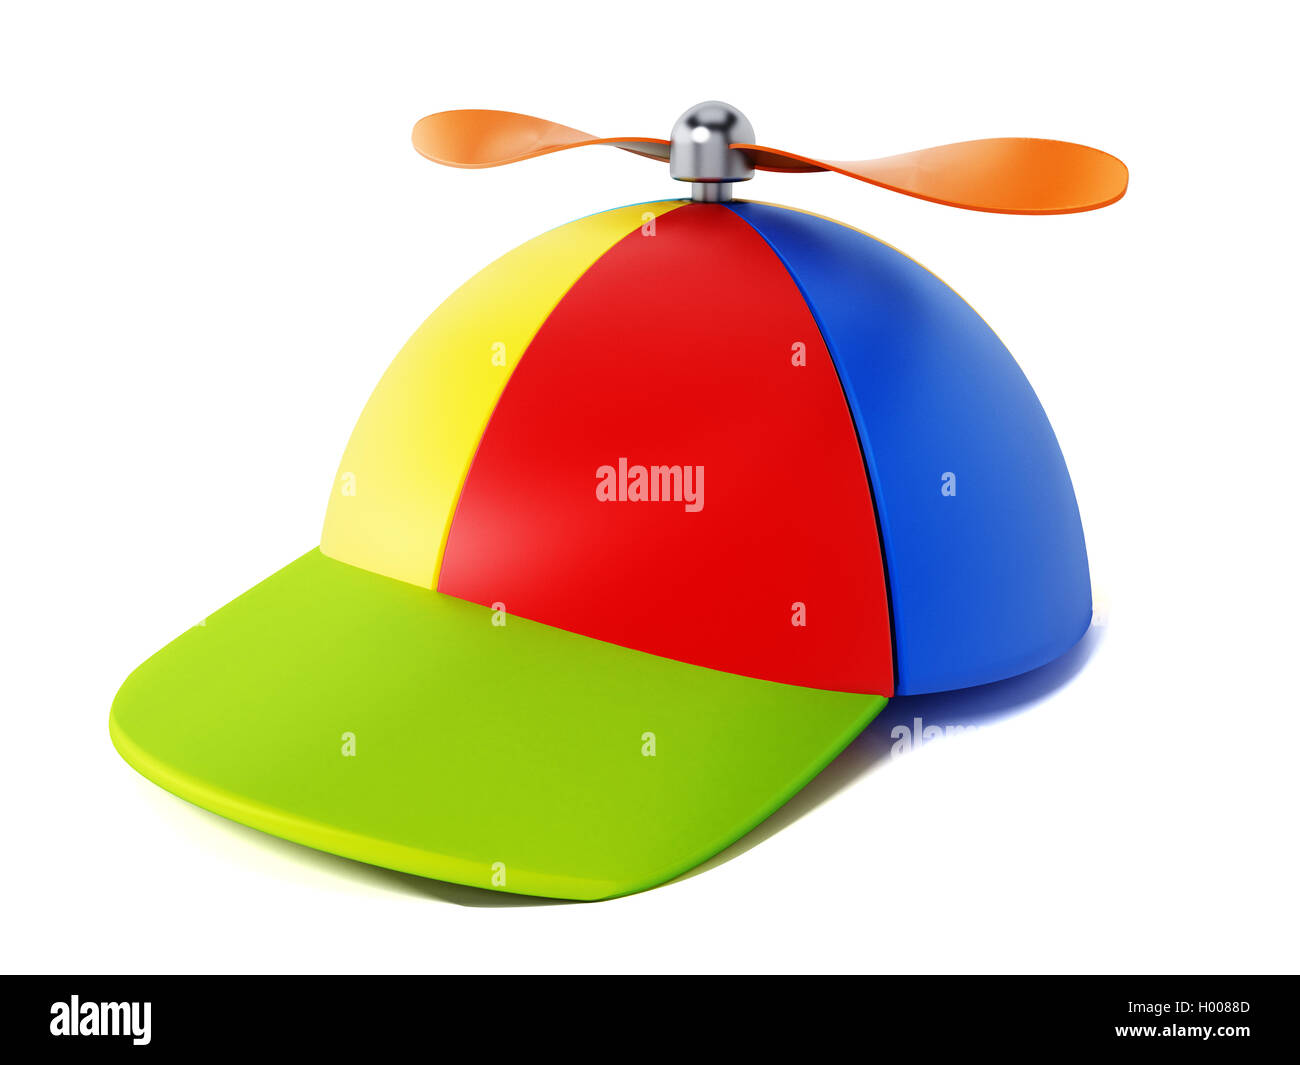 c7505f81bfc Multi colored hat with propeller isolated on white background. 3D  illustration. - Stock Image